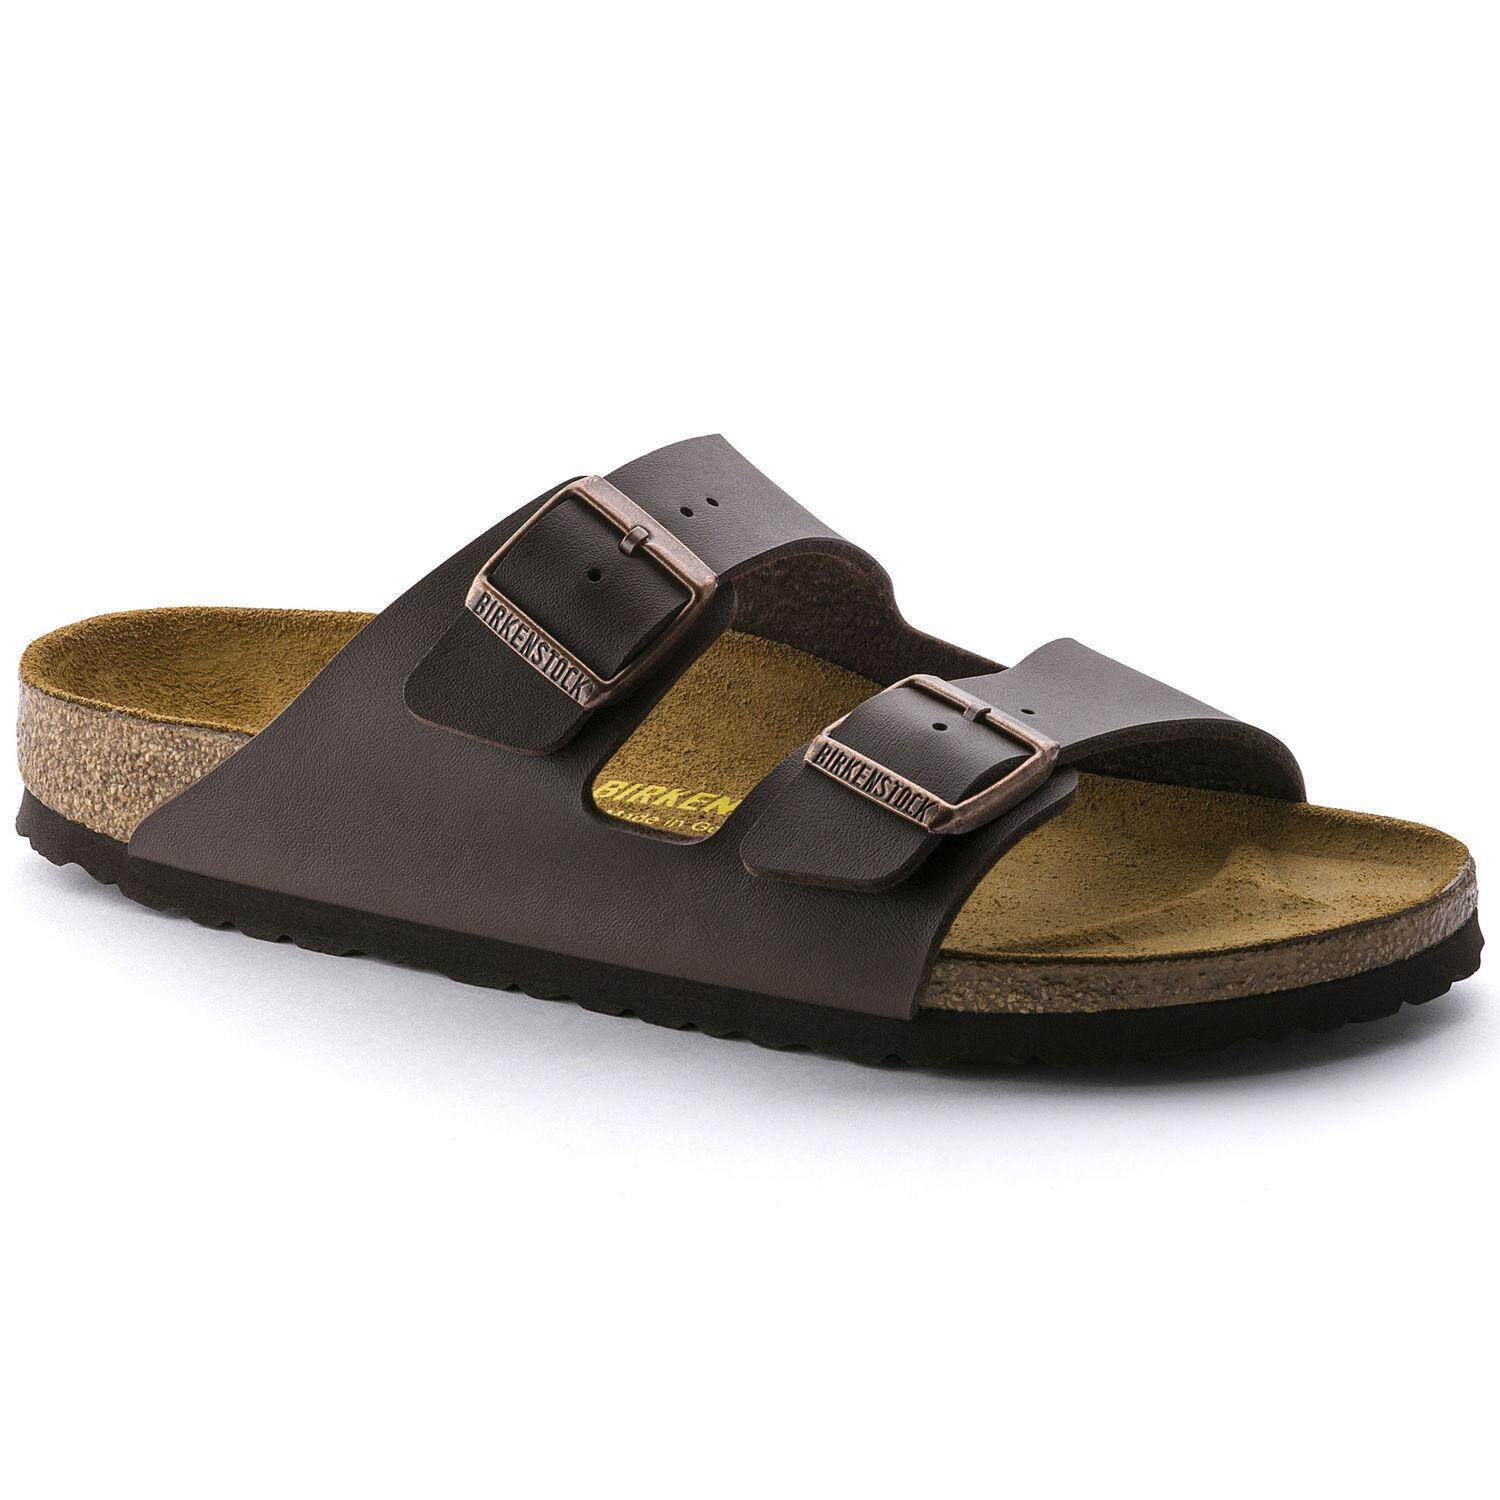 Birkenstock Arizona 51701- Dark Brown